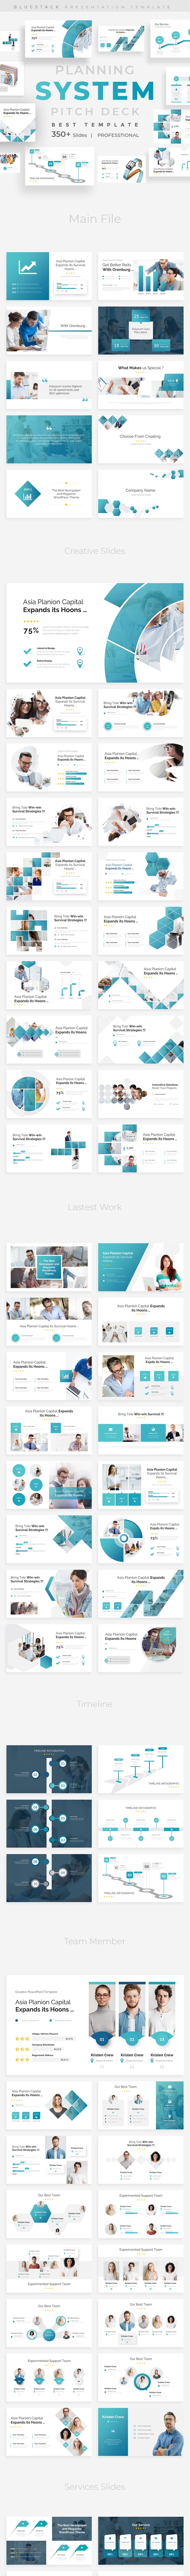 Planning System Pitch Deck Powerpoint Template - Business PowerPoint Templates